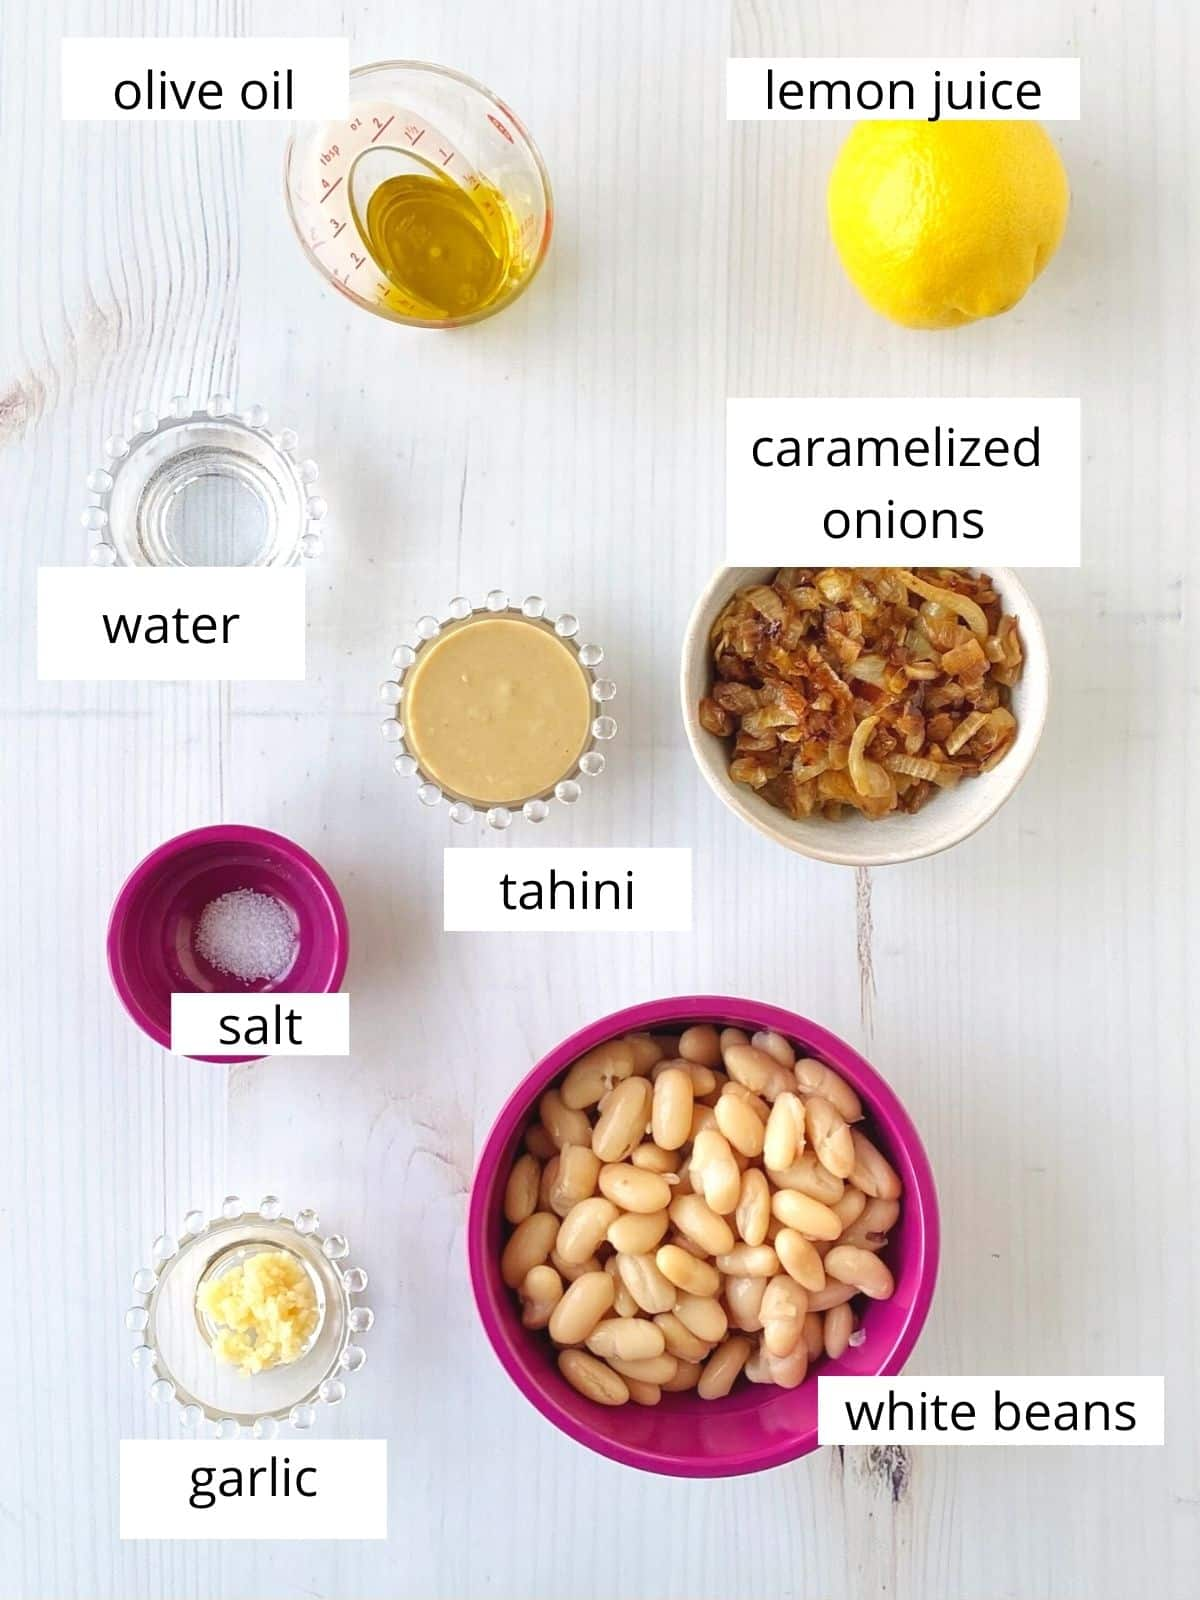 hummus ingredients - white beans, tahini, lemon, garlic, oil, water, caramelized onions